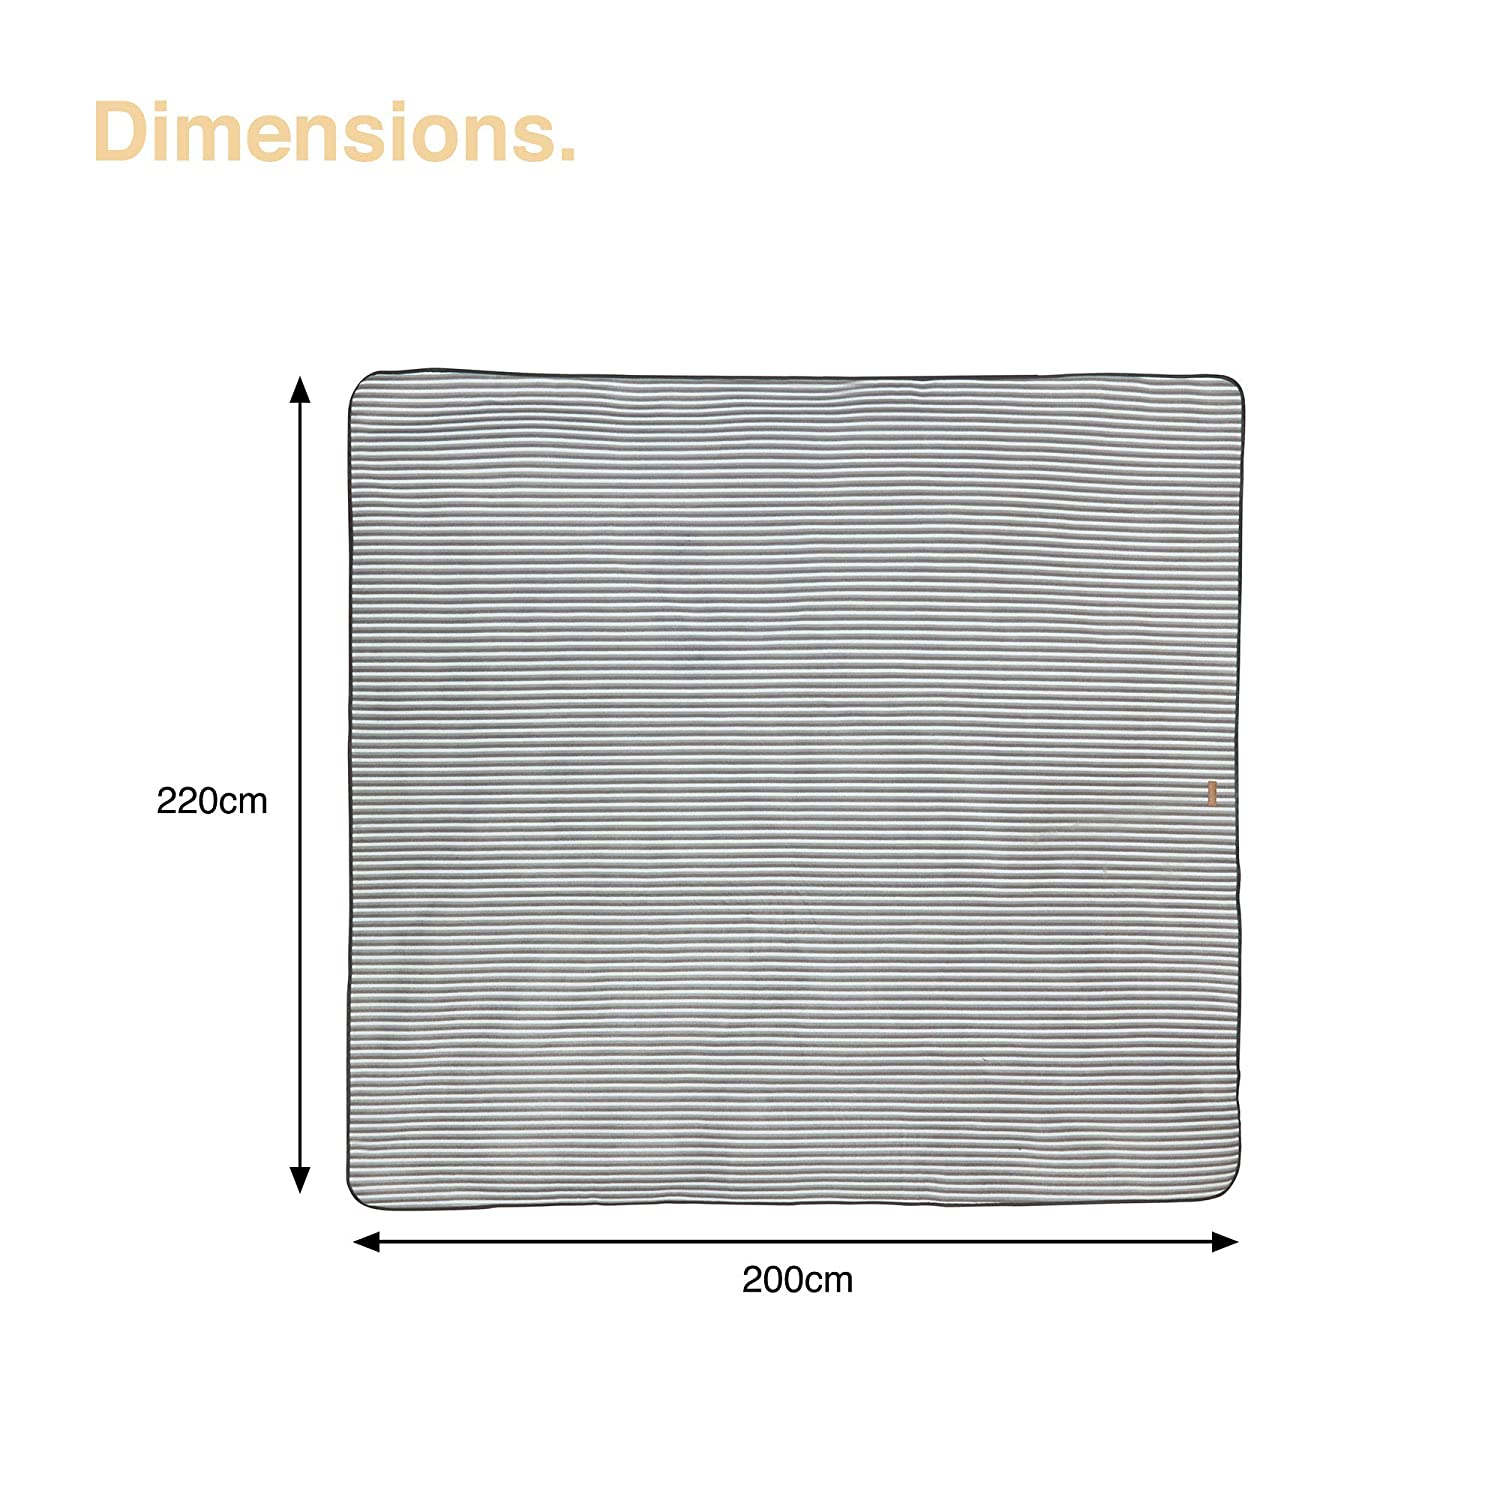 Striped VonShef Picnic Blanket Extra Large 200 x 220cm Lightweight Waterproof Family Sized Blanket